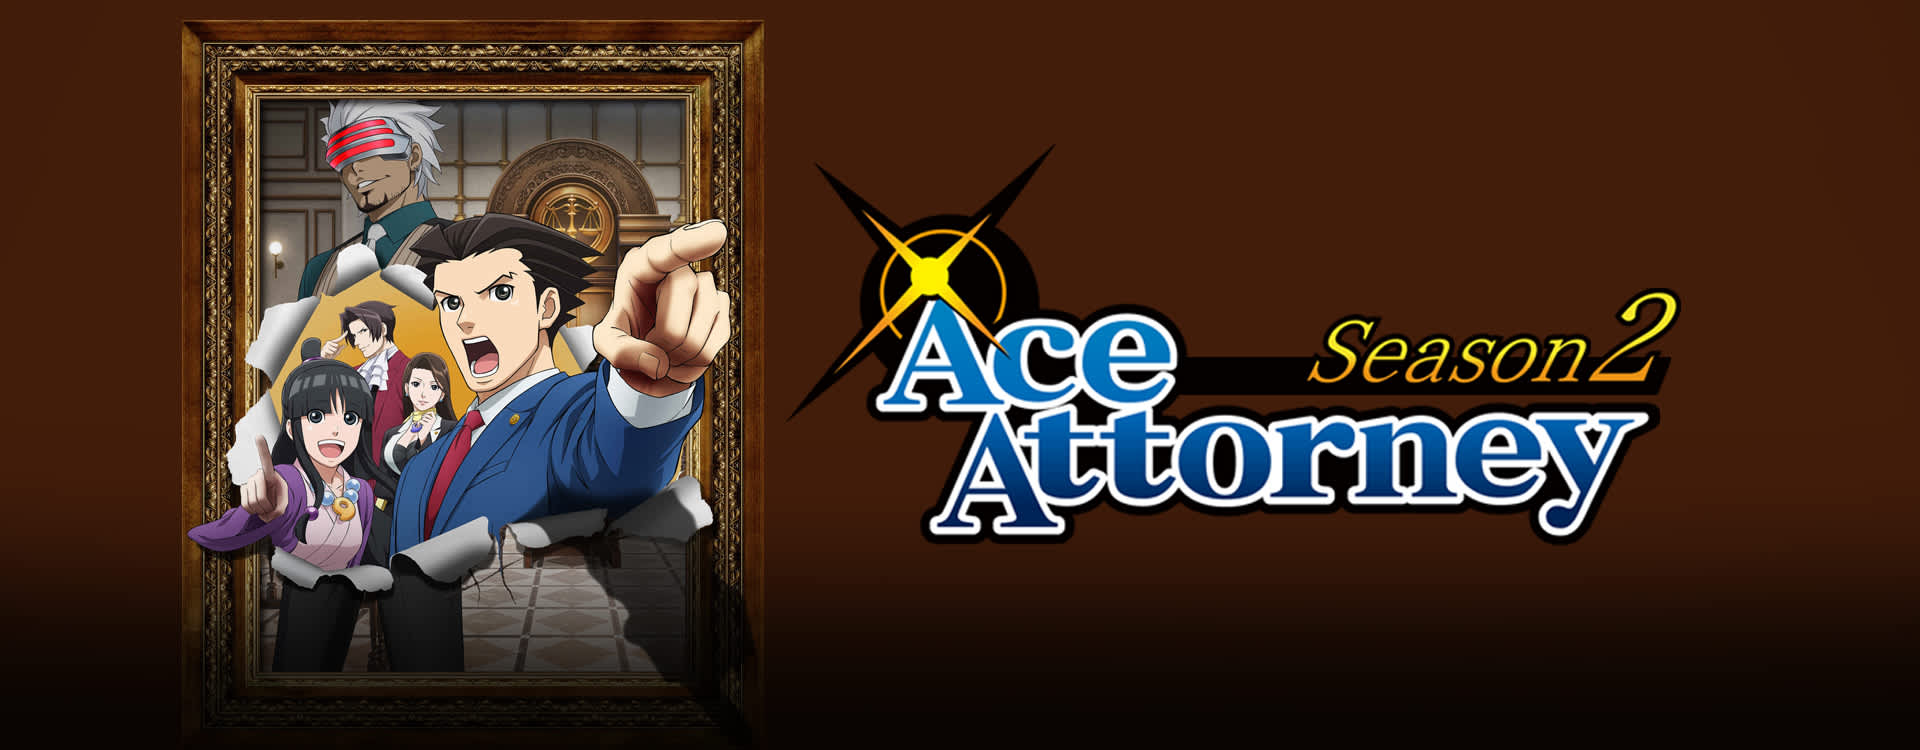 Watch Ace Attorney Sub Dub Comedy Drama Anime Funimation